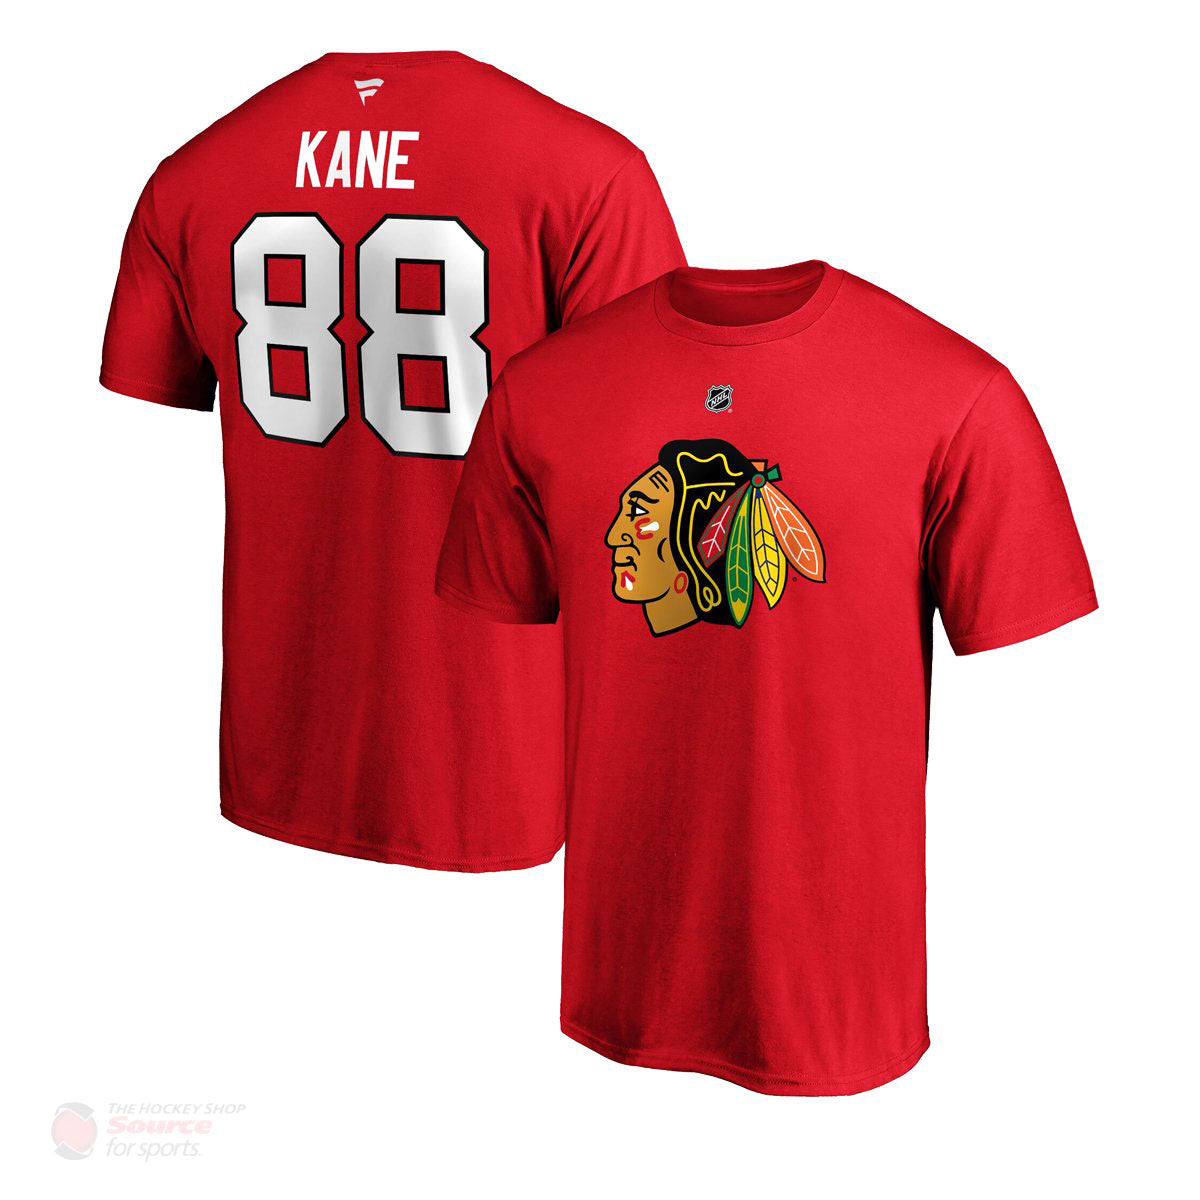 Chicago Blackhawks Fanatics Authentic Name & Number Mens Shirt - Patrick Kane